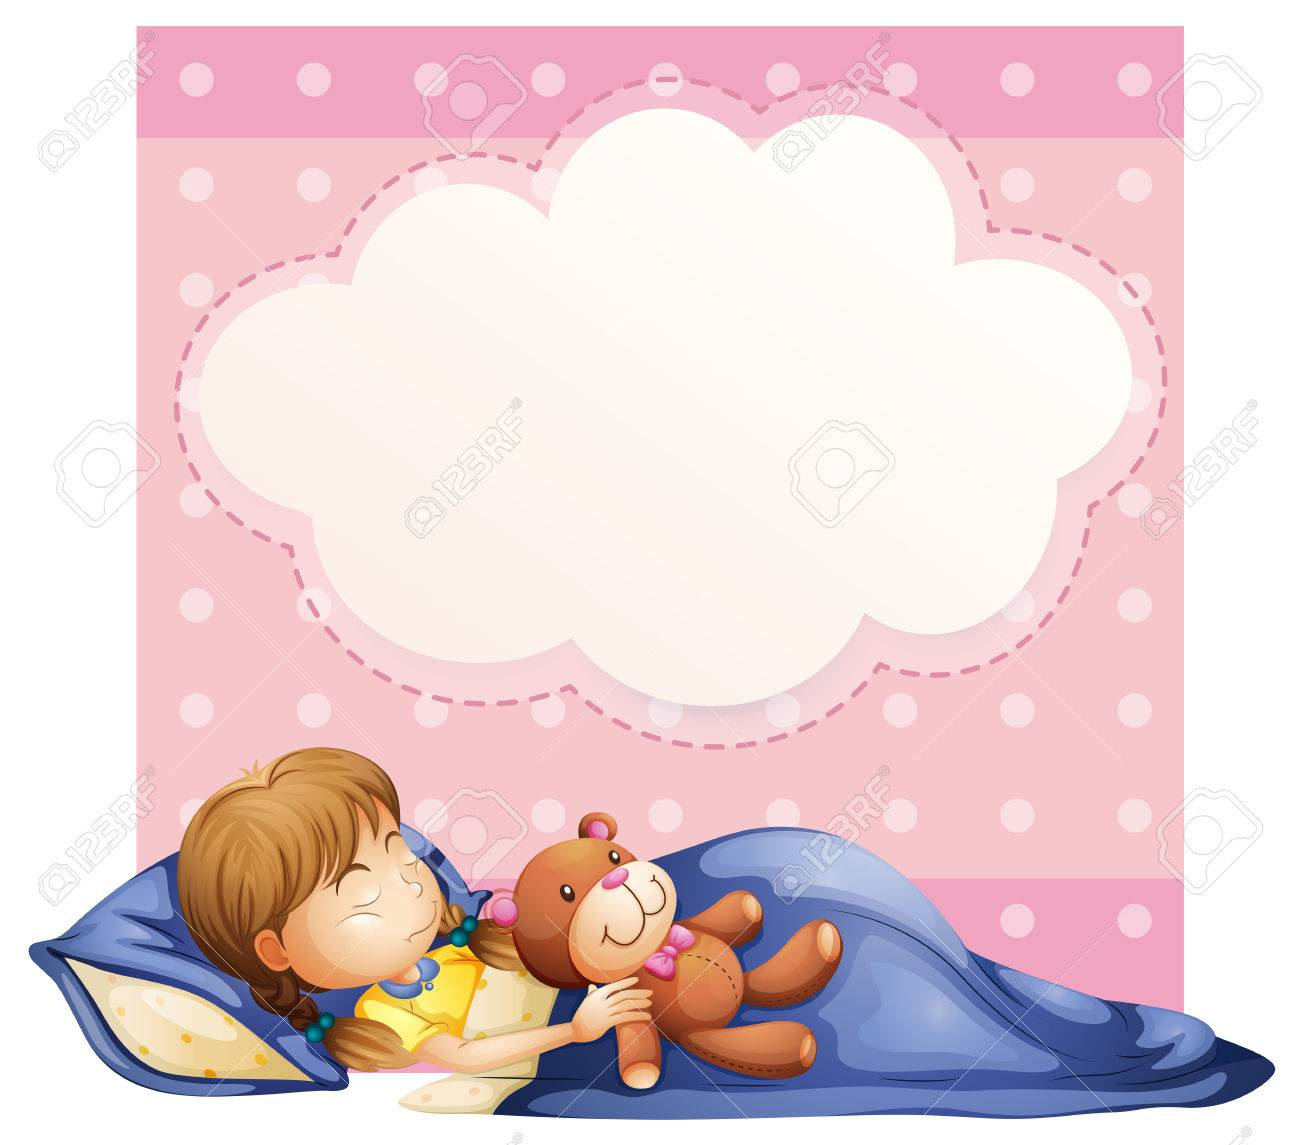 Illustration of a banner with a girl sleeping background - 31513959